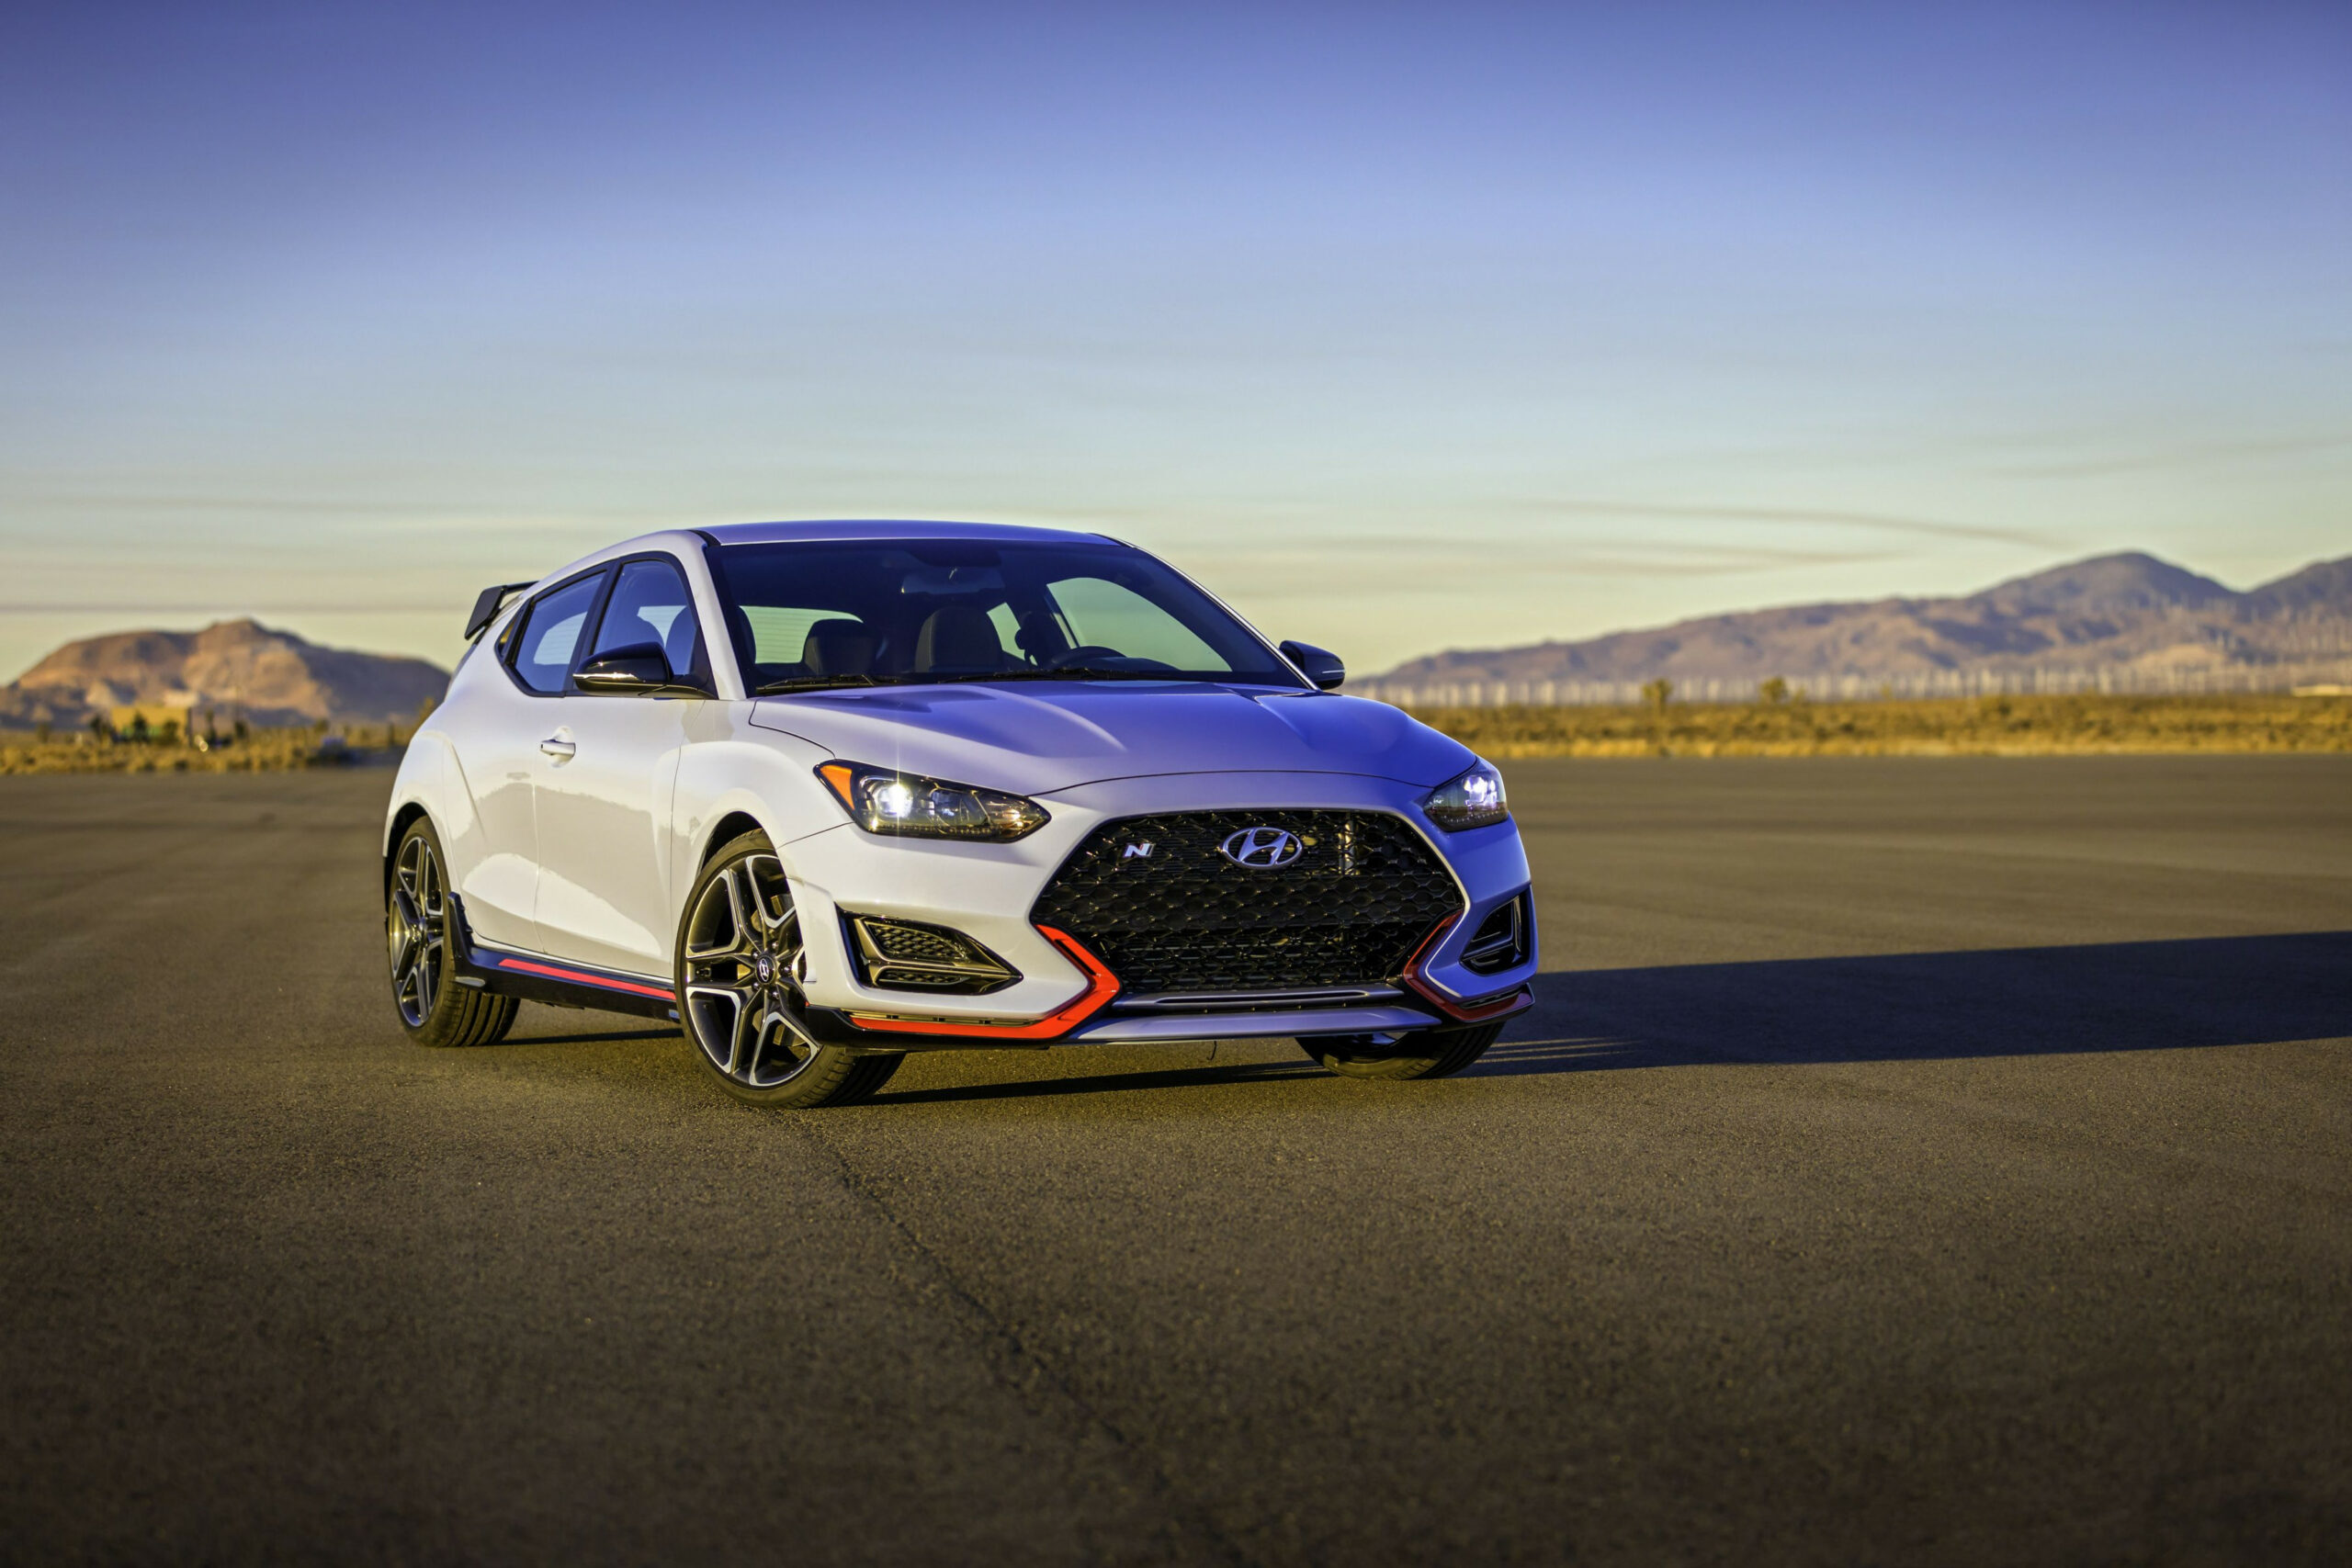 12 Hyundai Veloster N Review, Pricing, and Specs - 2020 hyundai veloster n